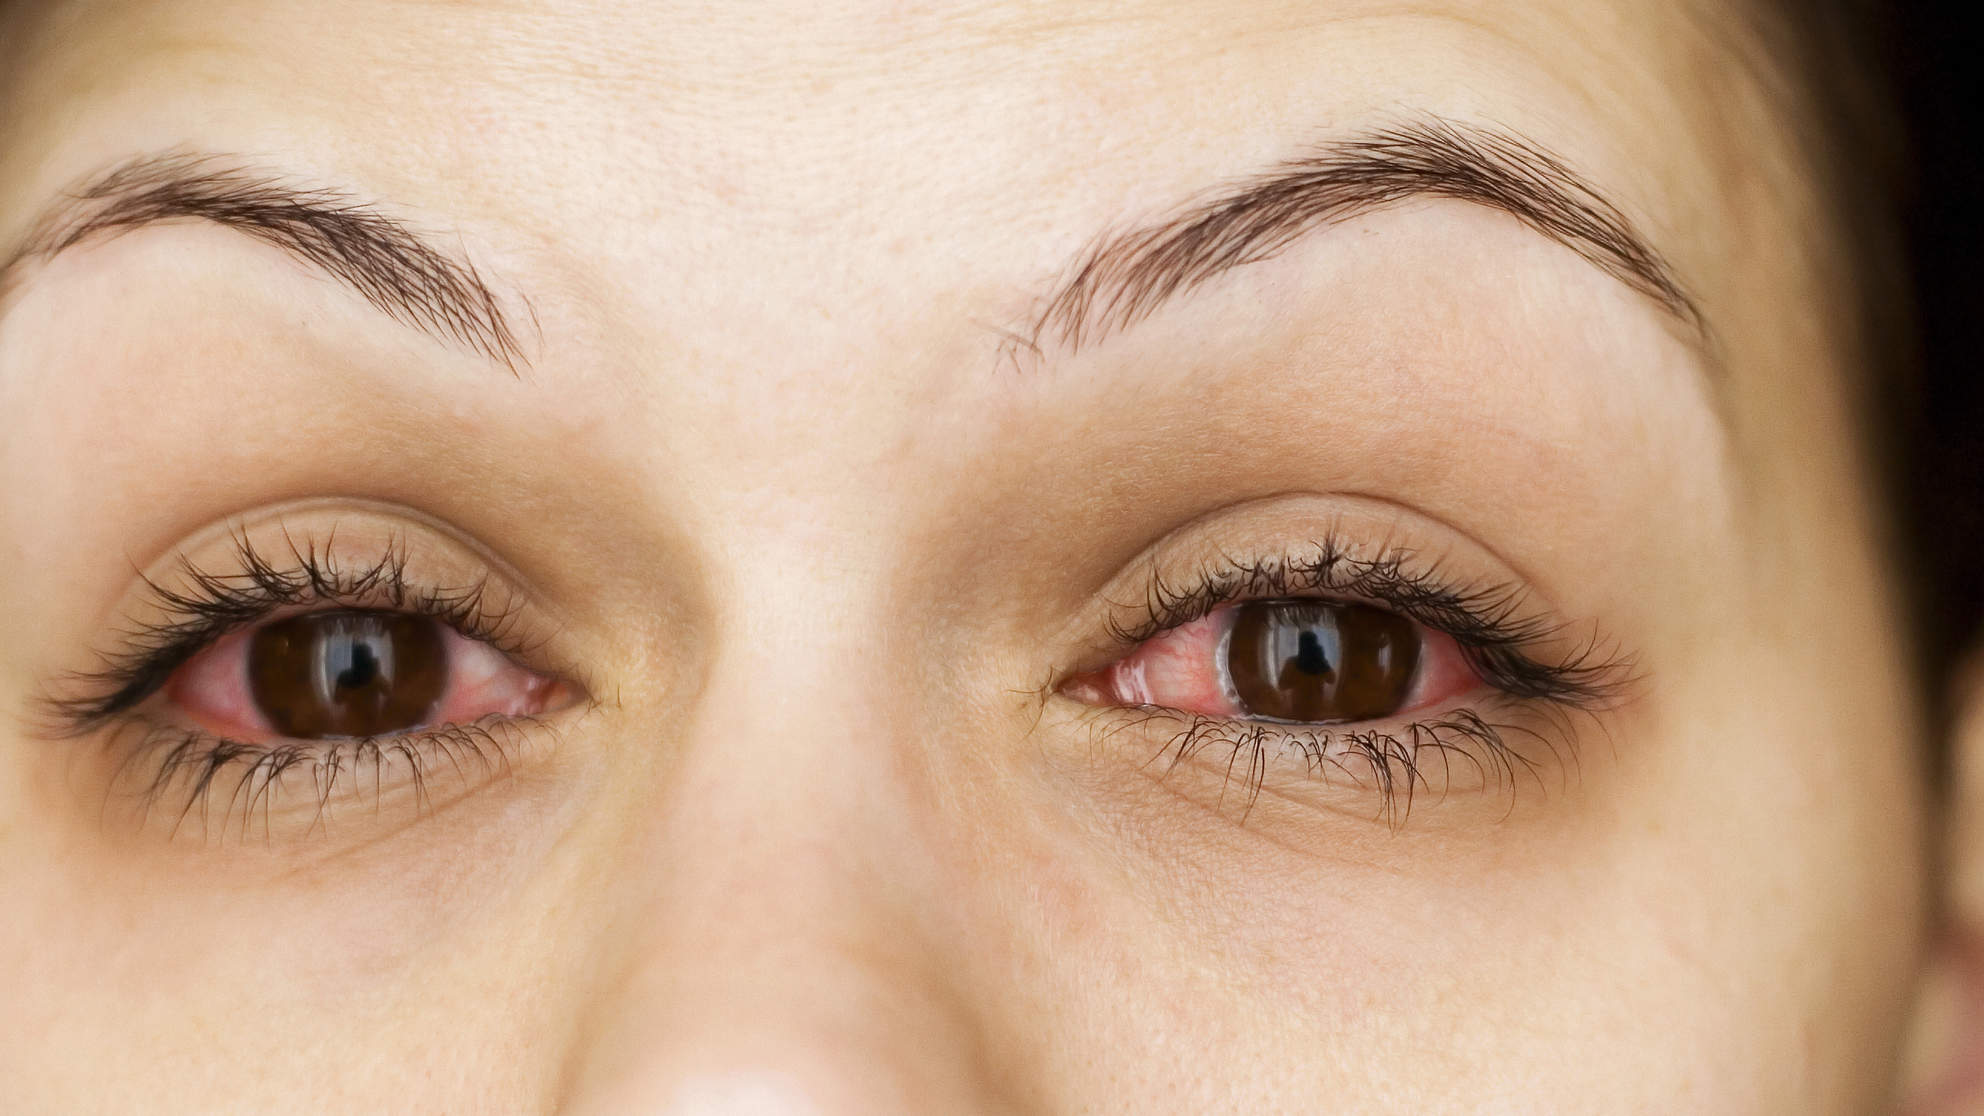 Pink eye allergies conjunctivitis viral bacterial